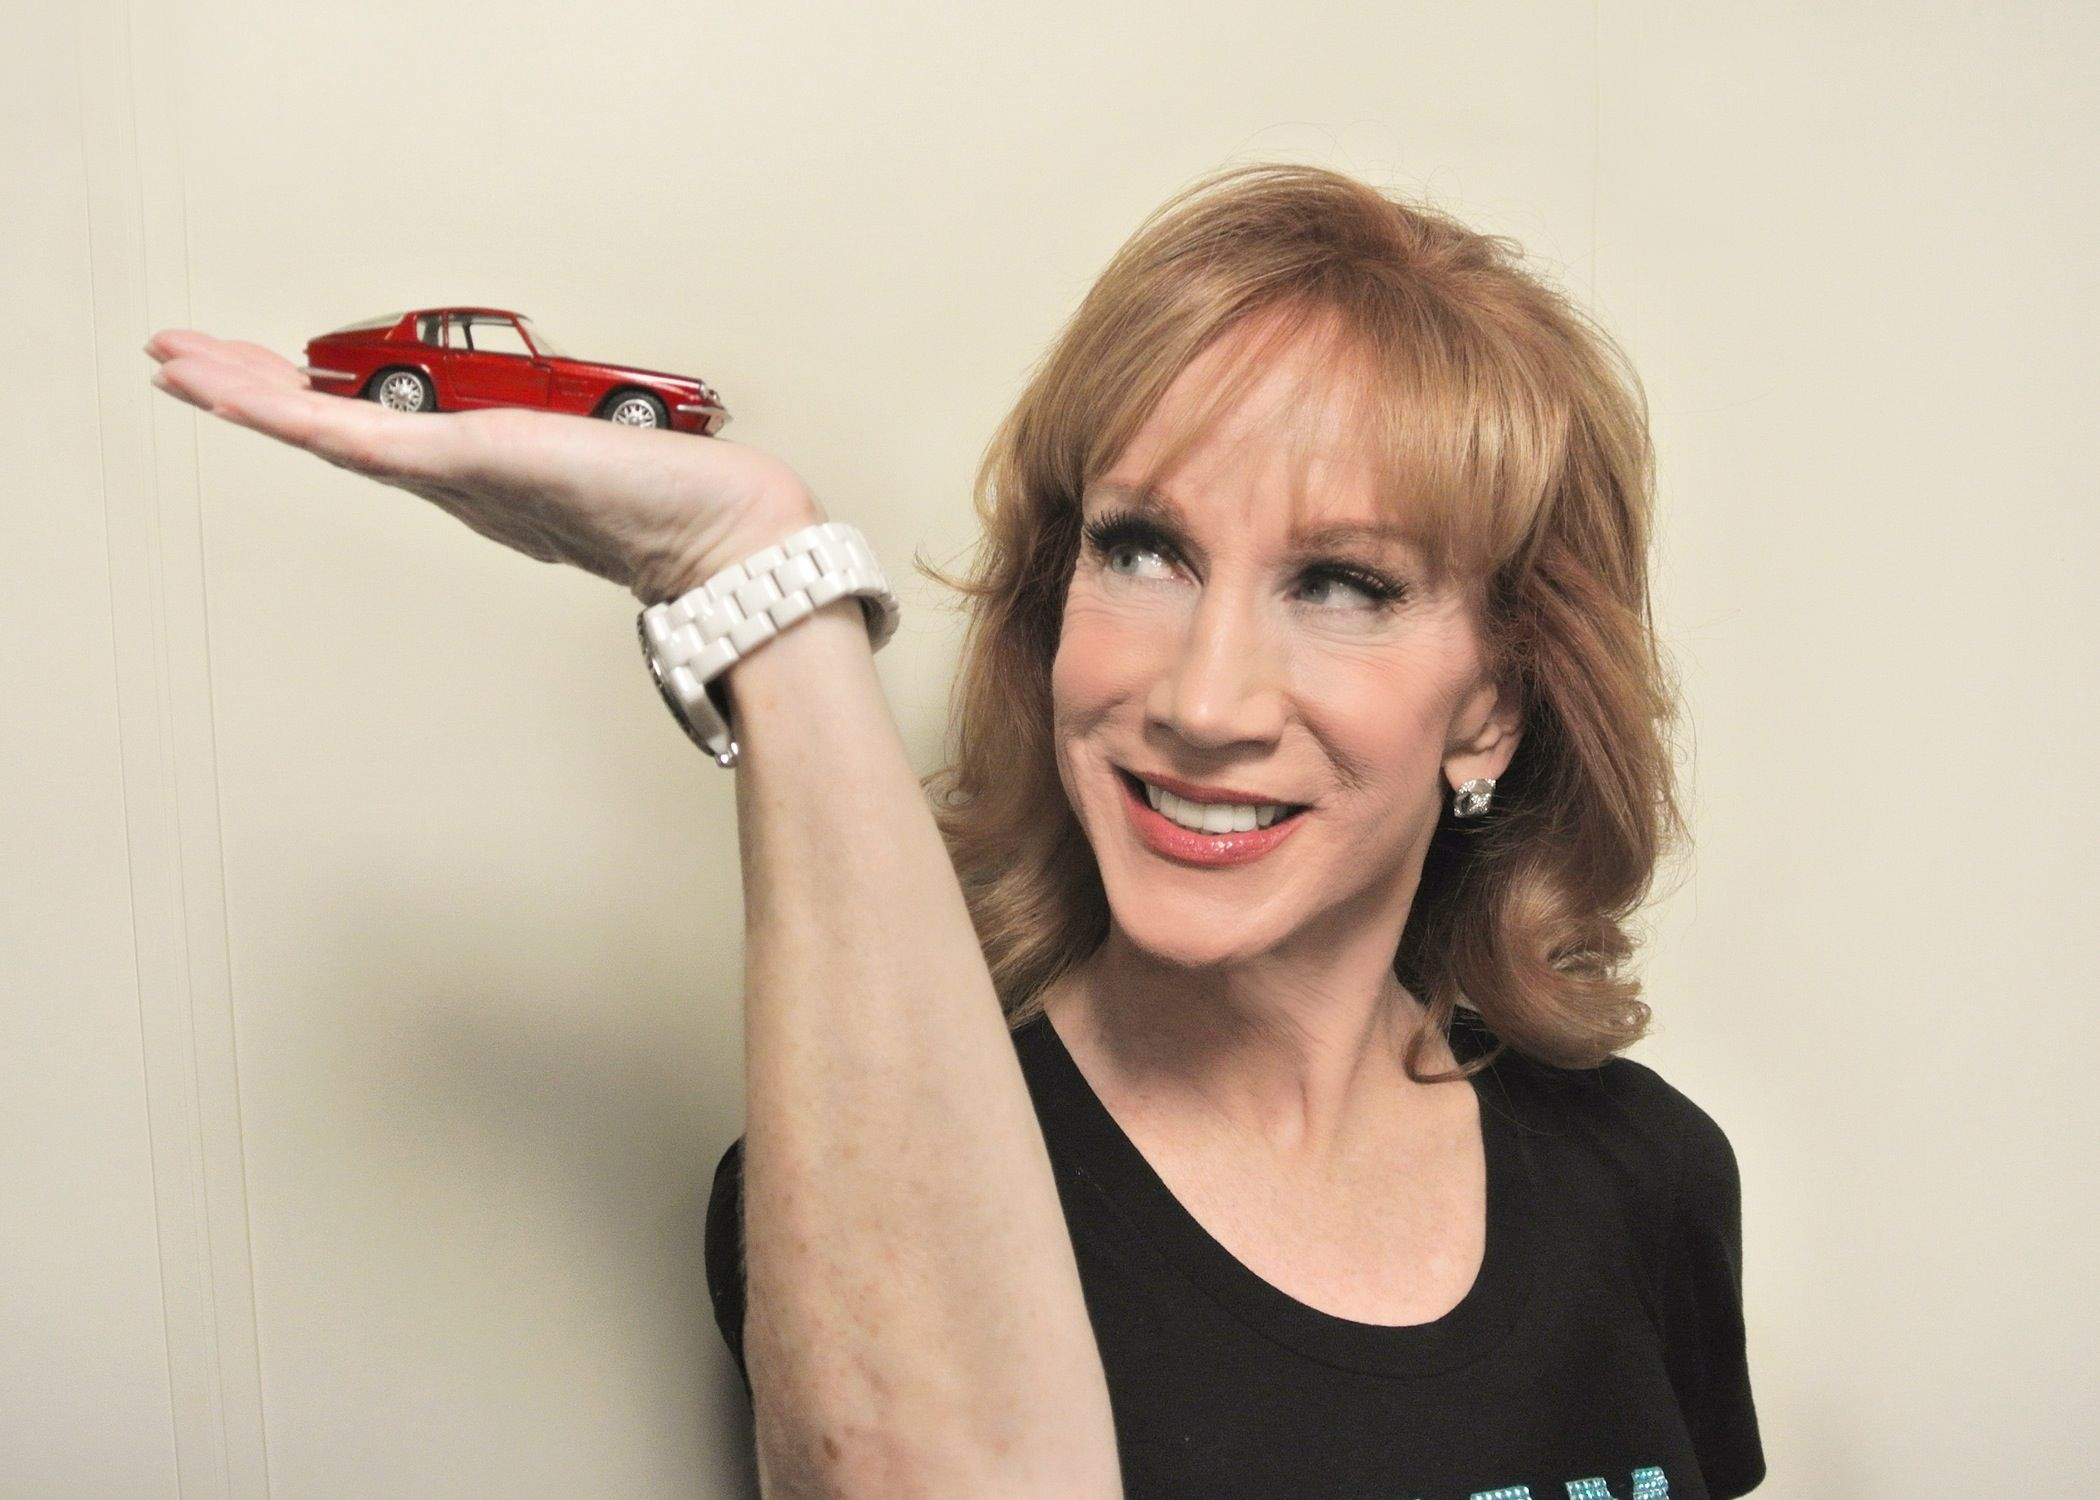 The Car Crush backstage with the indomitable Kathy Griffin and Maserati Mistral following her performance aboard the Celebrity Silhouette/Atlantis Cruise